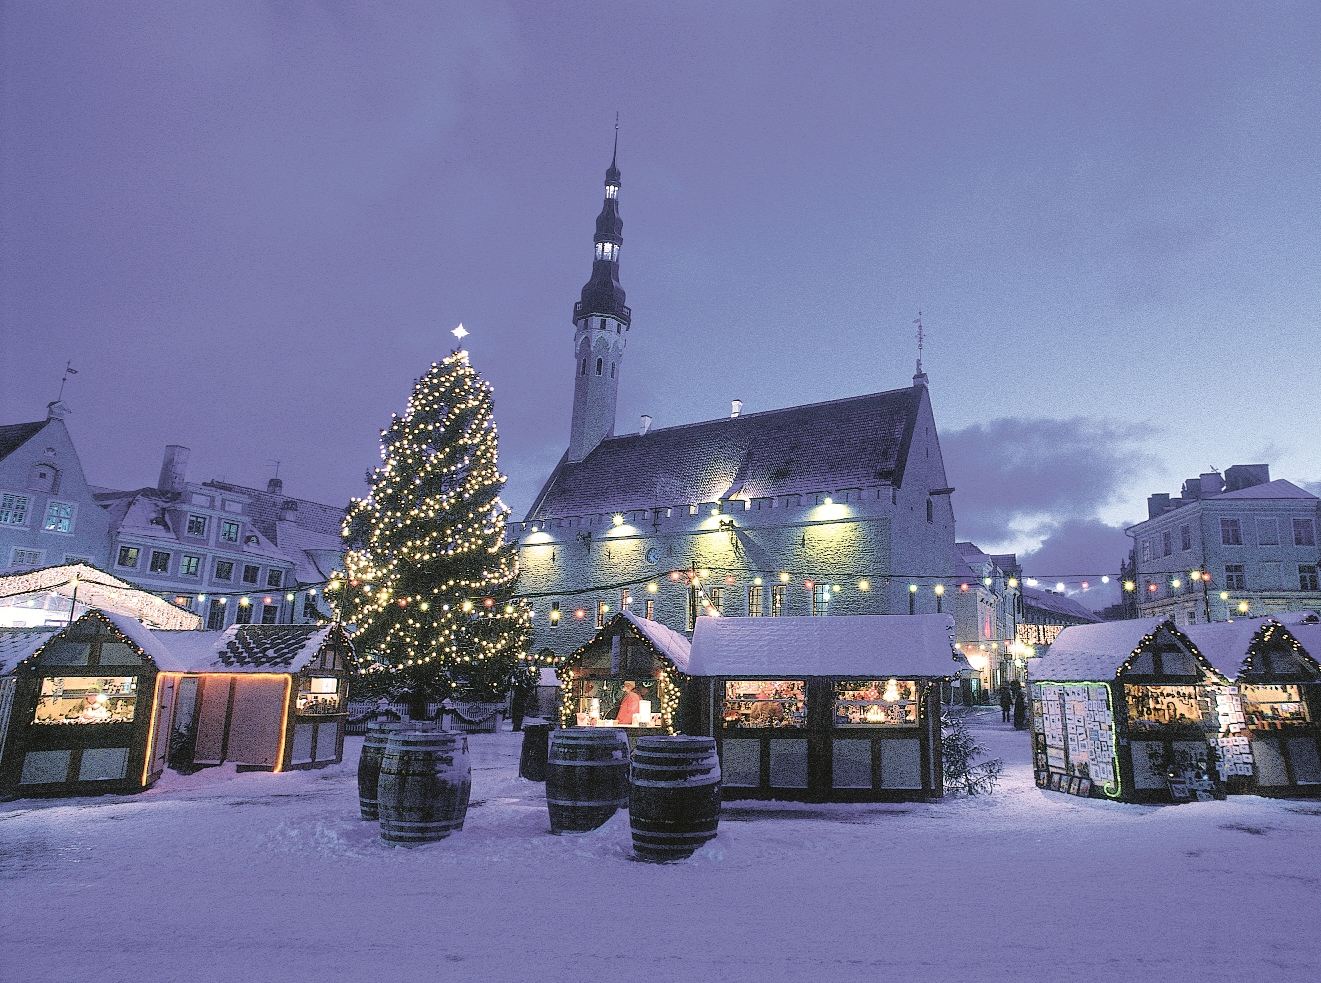 WEEK END MARCHES DE NOEL A TALLINN